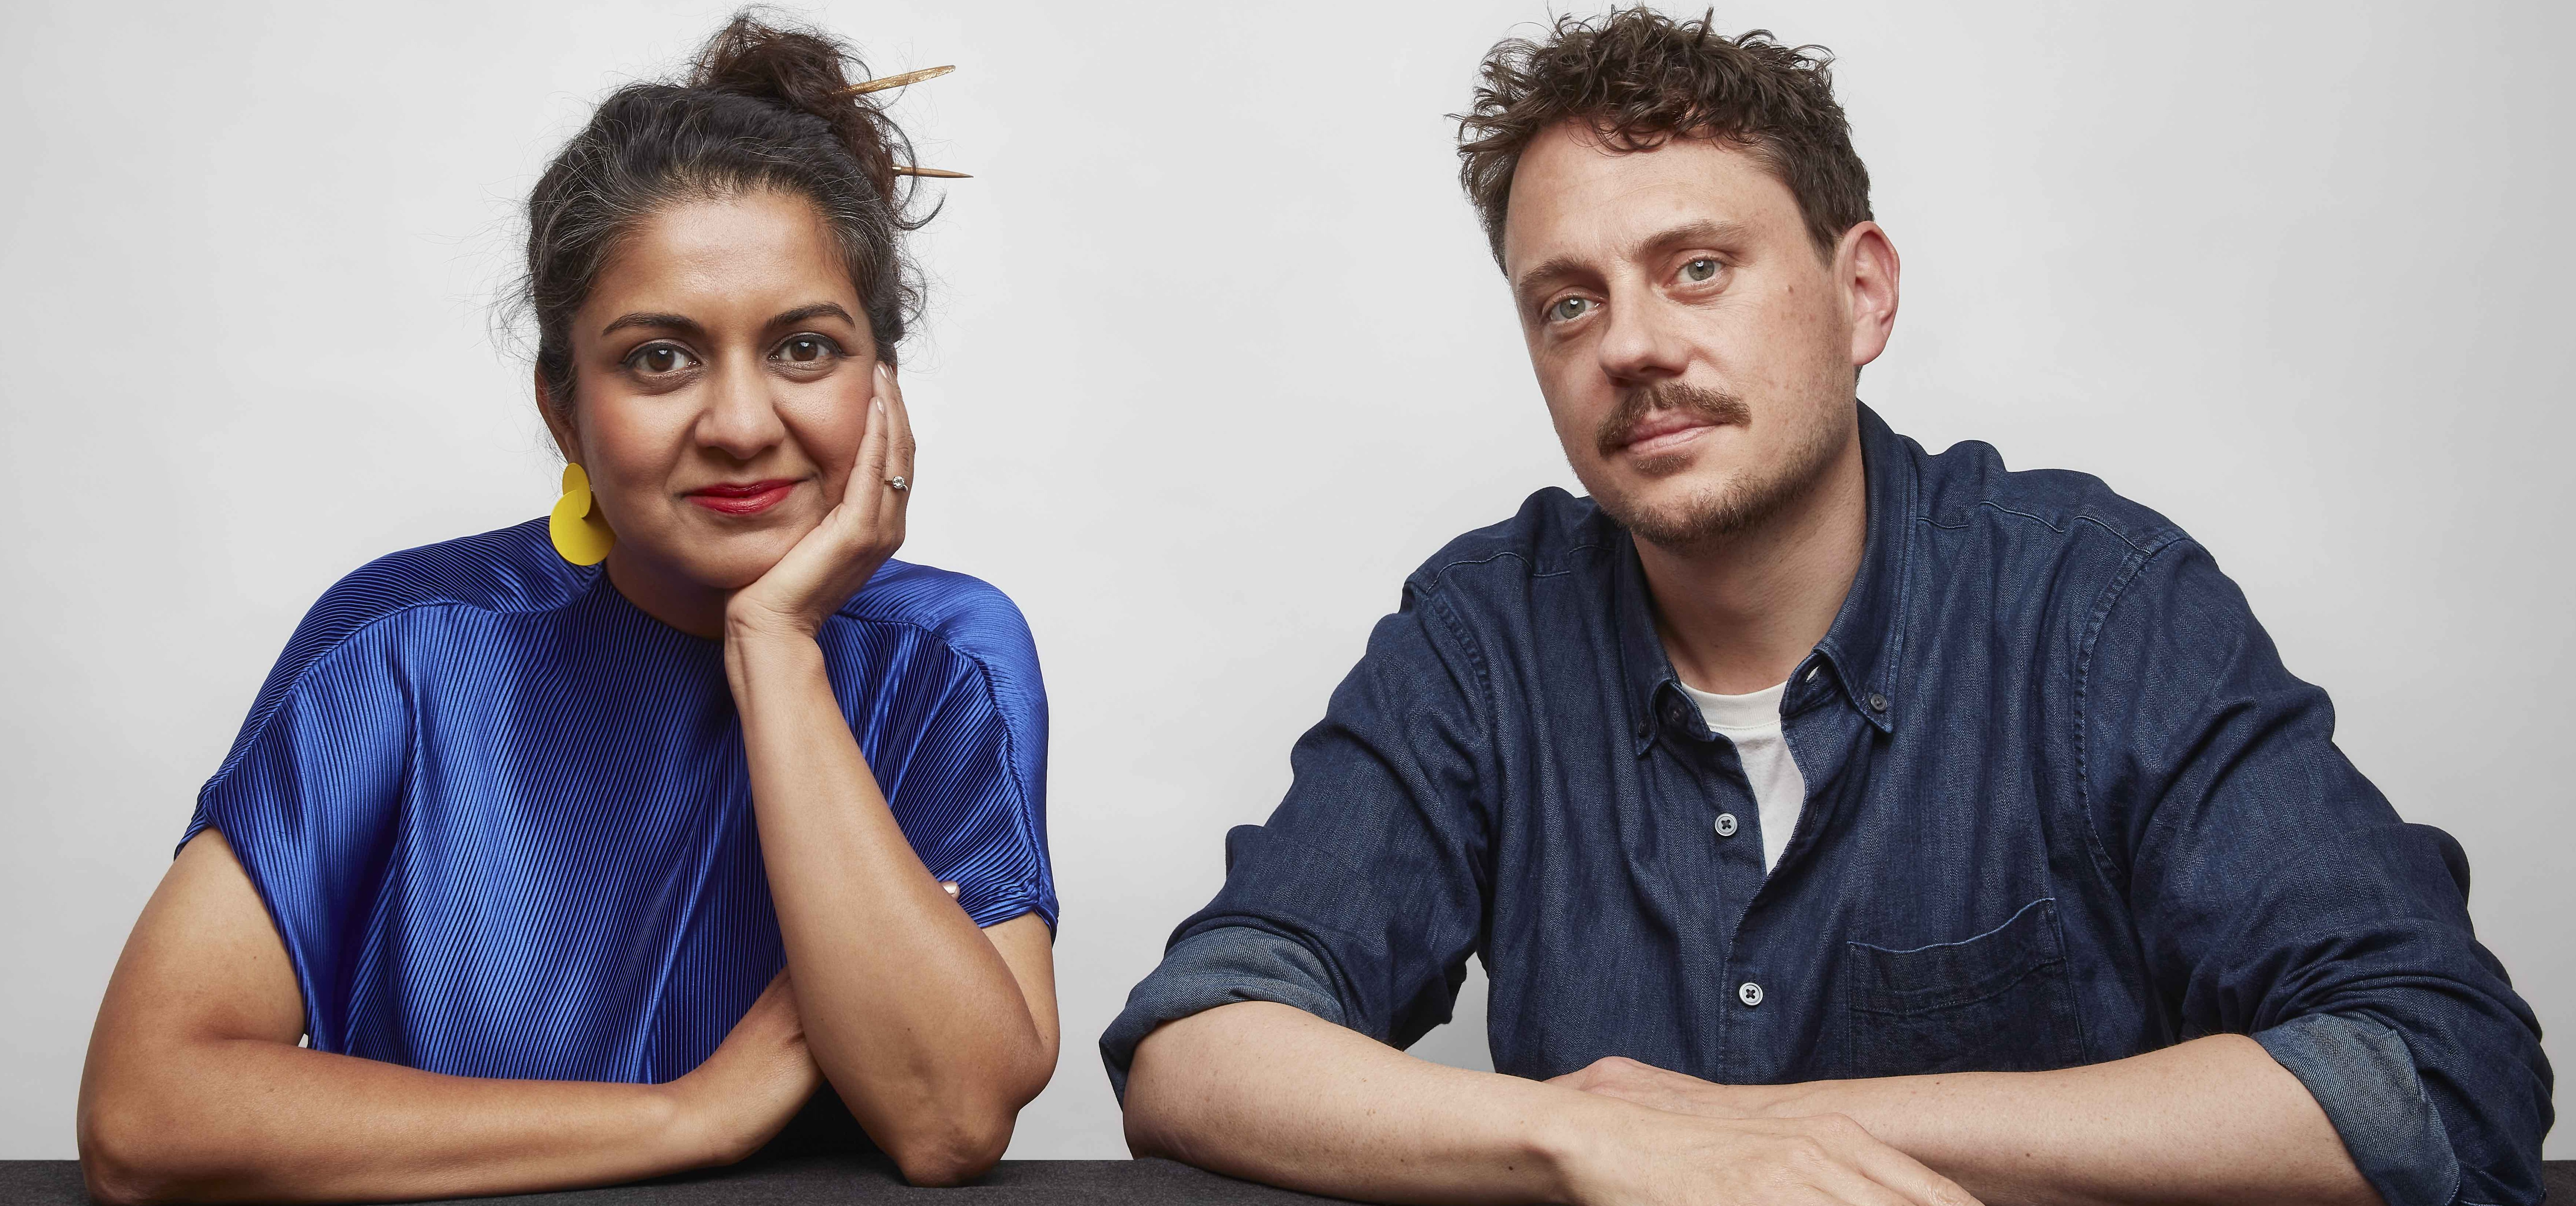 Anab Jain and Jo Ardern, futurists and co-founders of Superflux